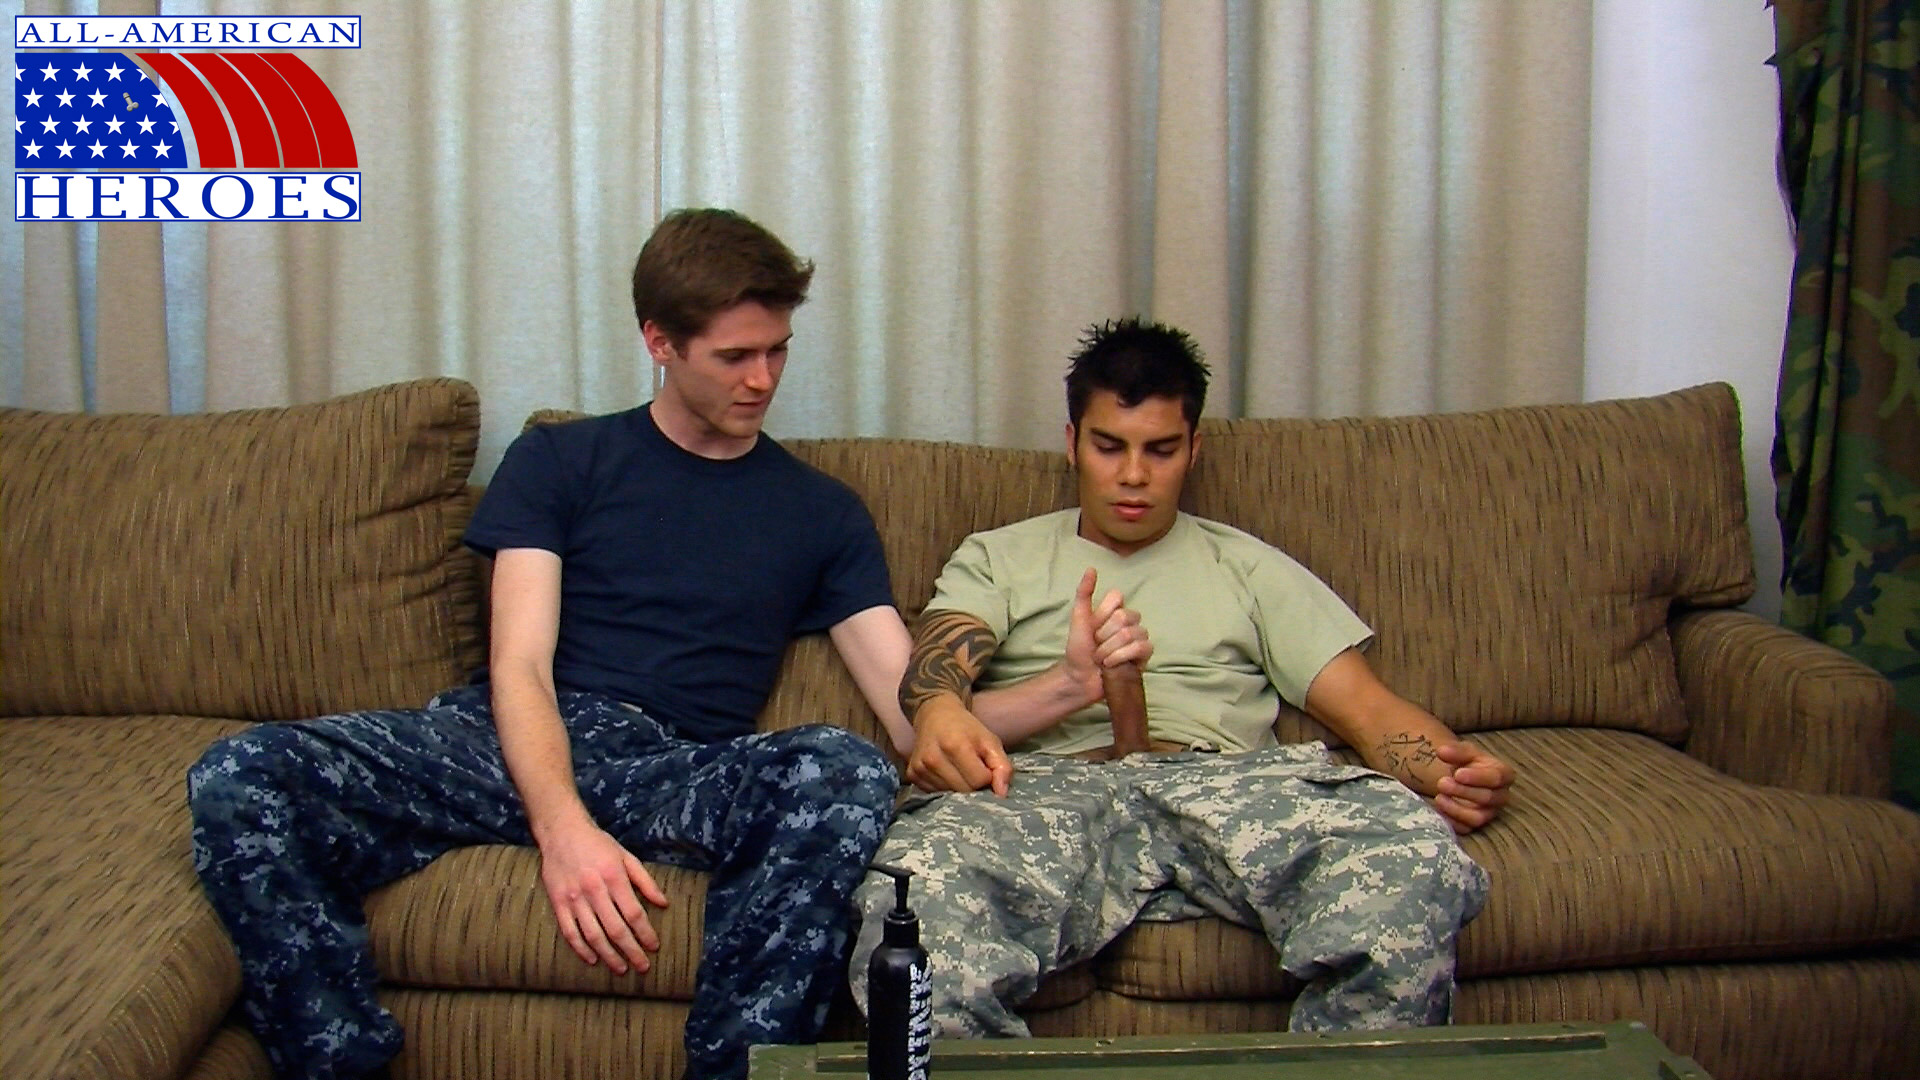 All American Heroes Sergeant Tony and Petty Officer Conan 01 Real Straight Army Sergeant Fucks a Gay Navy Petty Officer